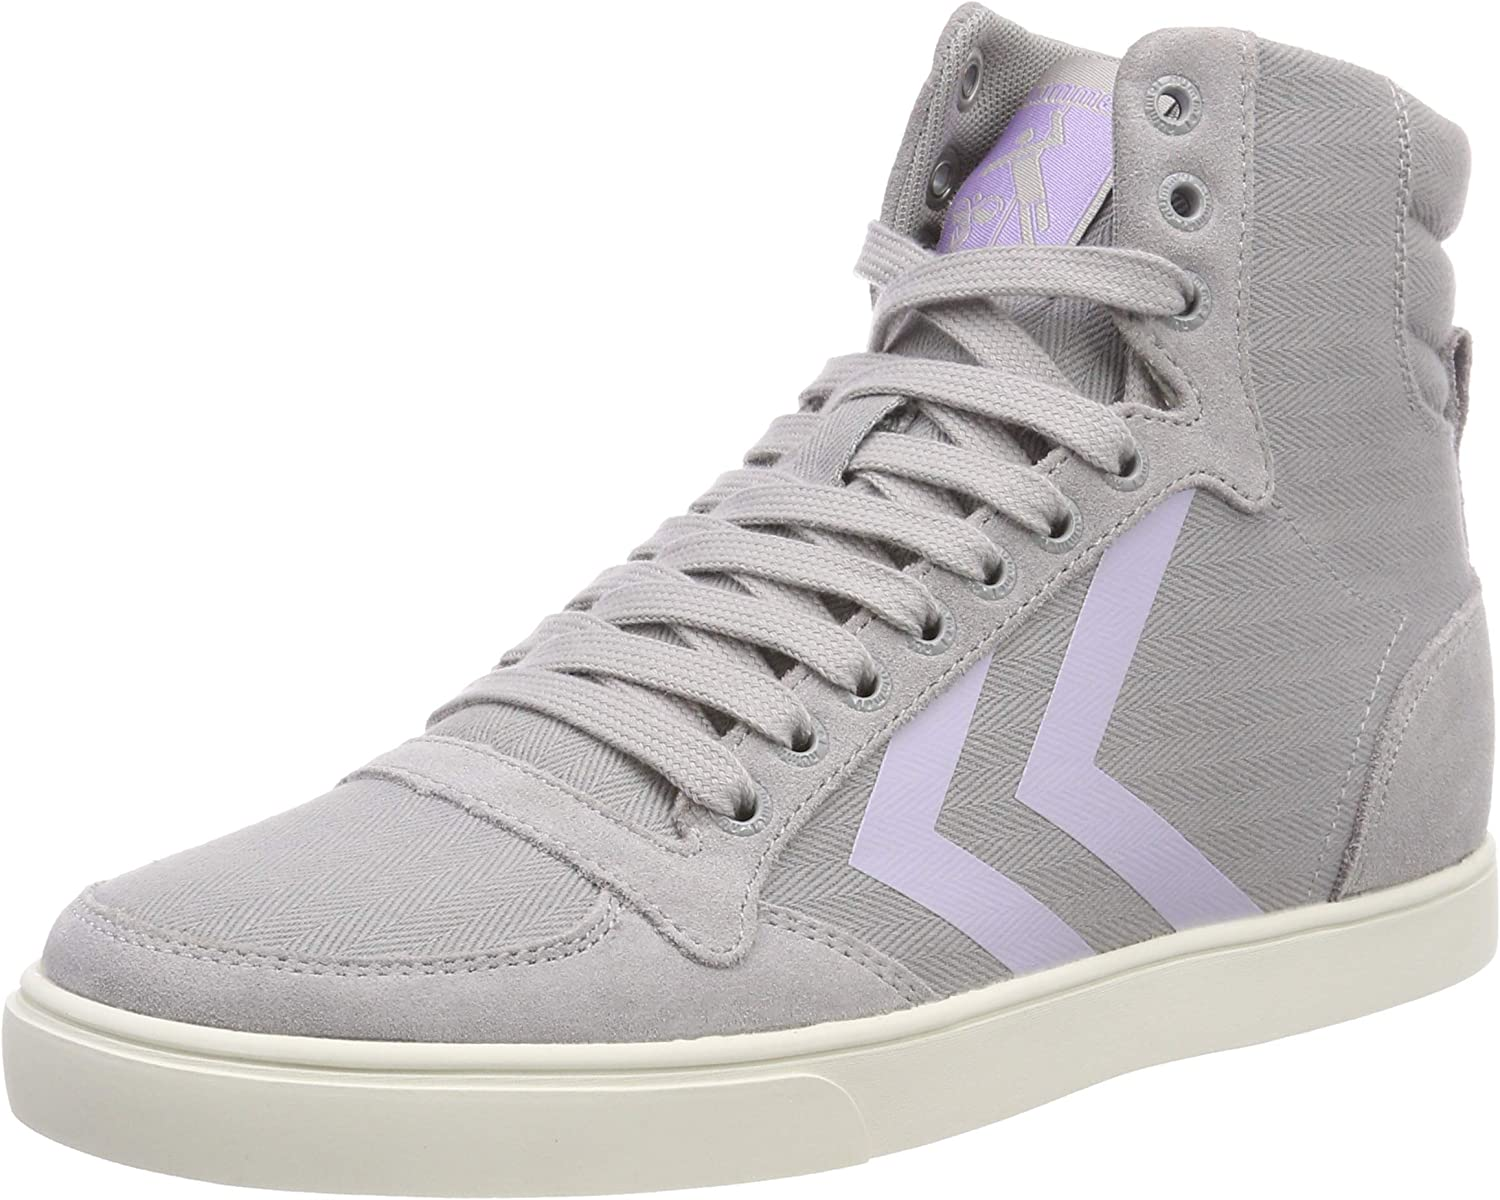 Hummel Women's Slimmer Stadil Hb High Hi-Top Trainers